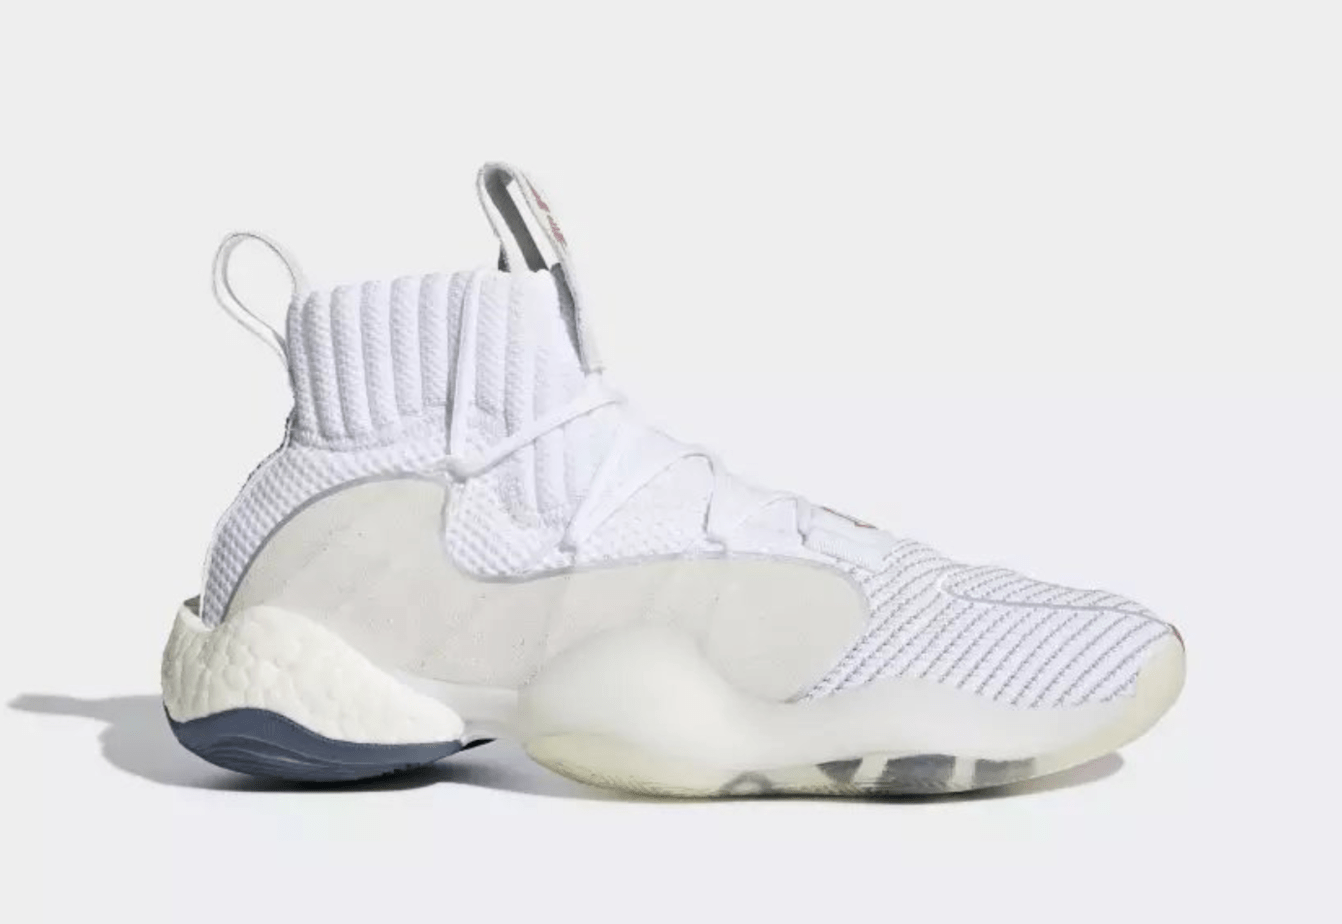 b0172f52e1de10 adidas BYW technology is currently all the rage amongst sneakerheads. With many  still waiting for a chance to try it on foot